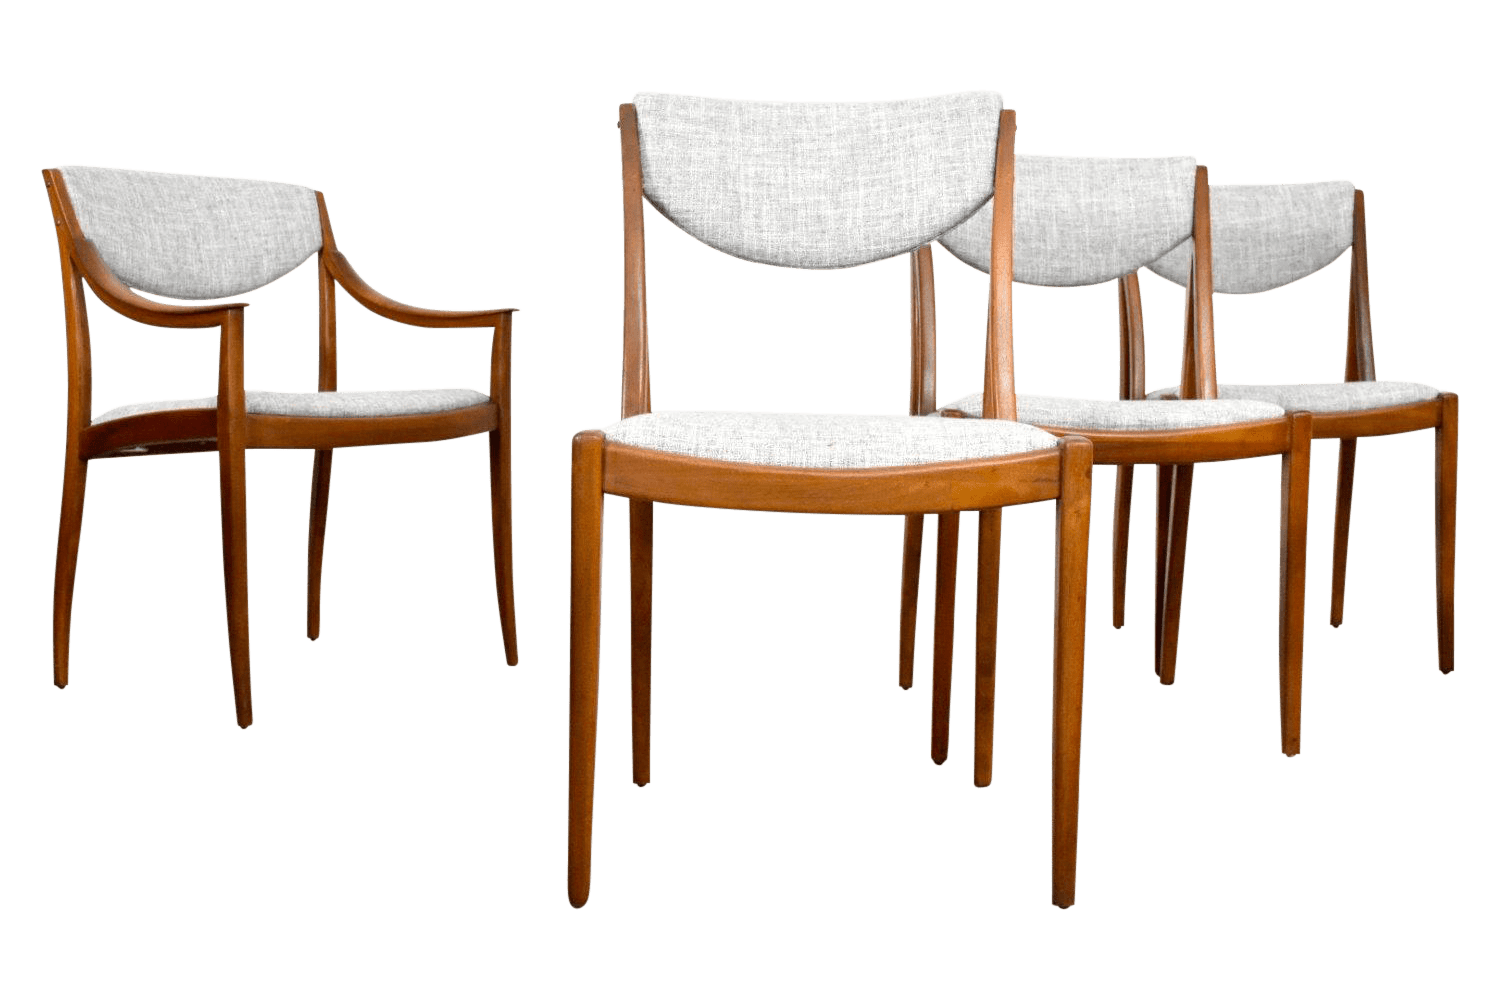 Drexel Chairs Mid Century Modern Drexel Dining Chairs Set Of 4 Chairish